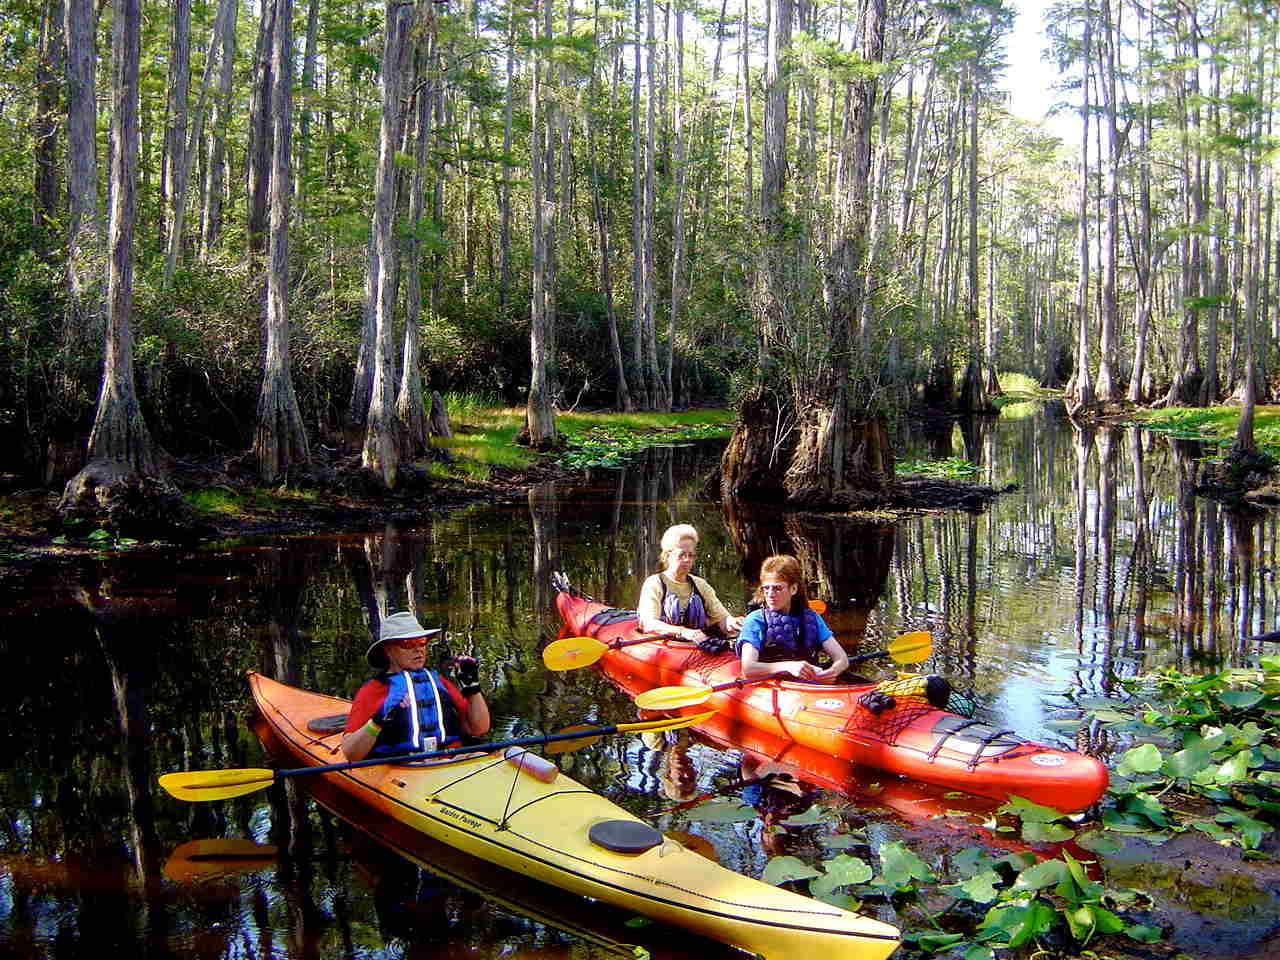 Discovering the Okefenokee Swamp and Cumberland Island